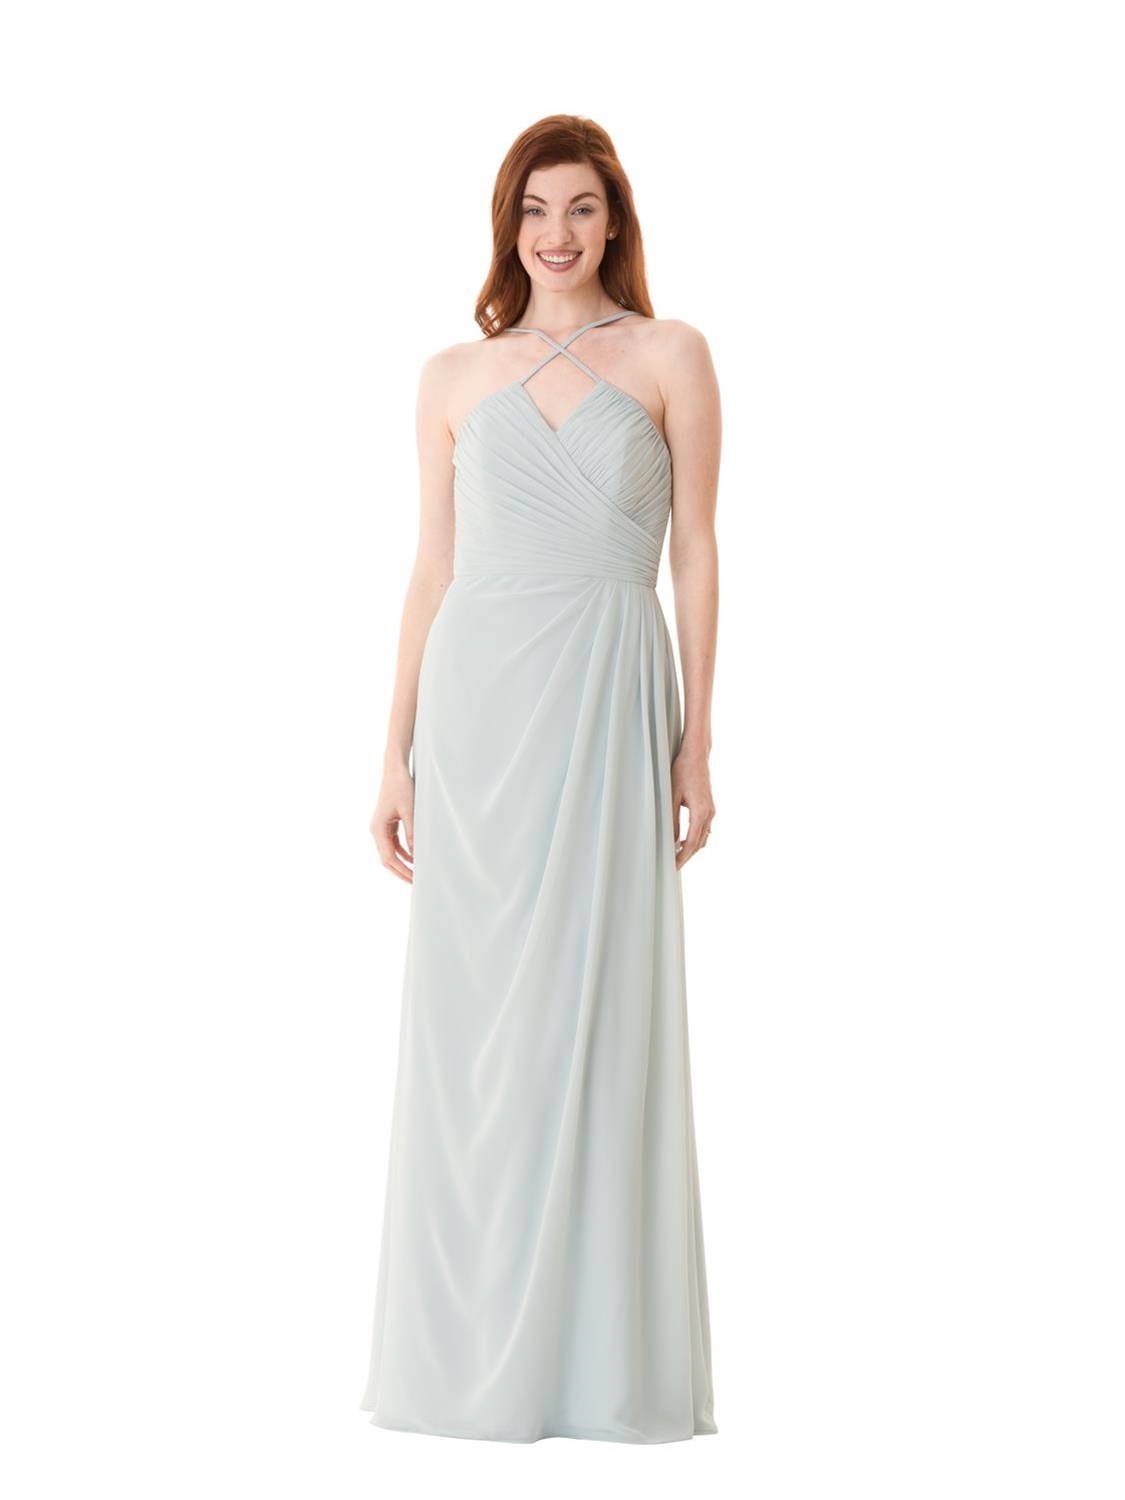 Bari jay bridesmaid dress style bc 1663 house of brides select color ombrellifo Images